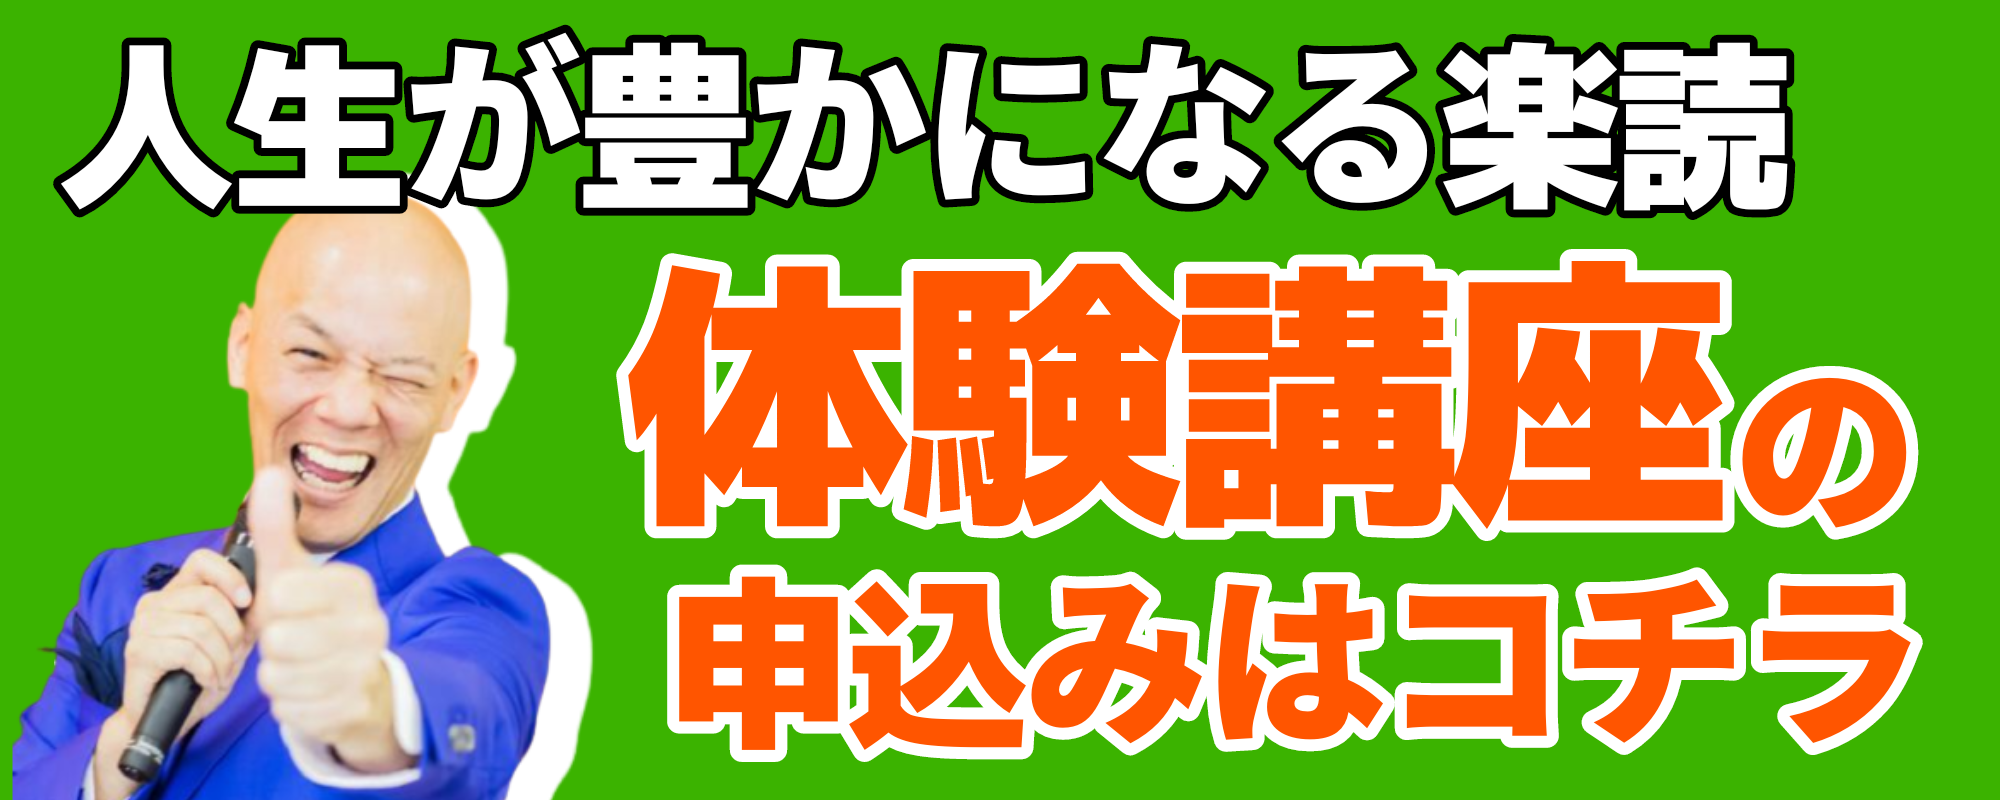 https://rth.co.jp/school/347.html?schoolId=347#trial_lesson